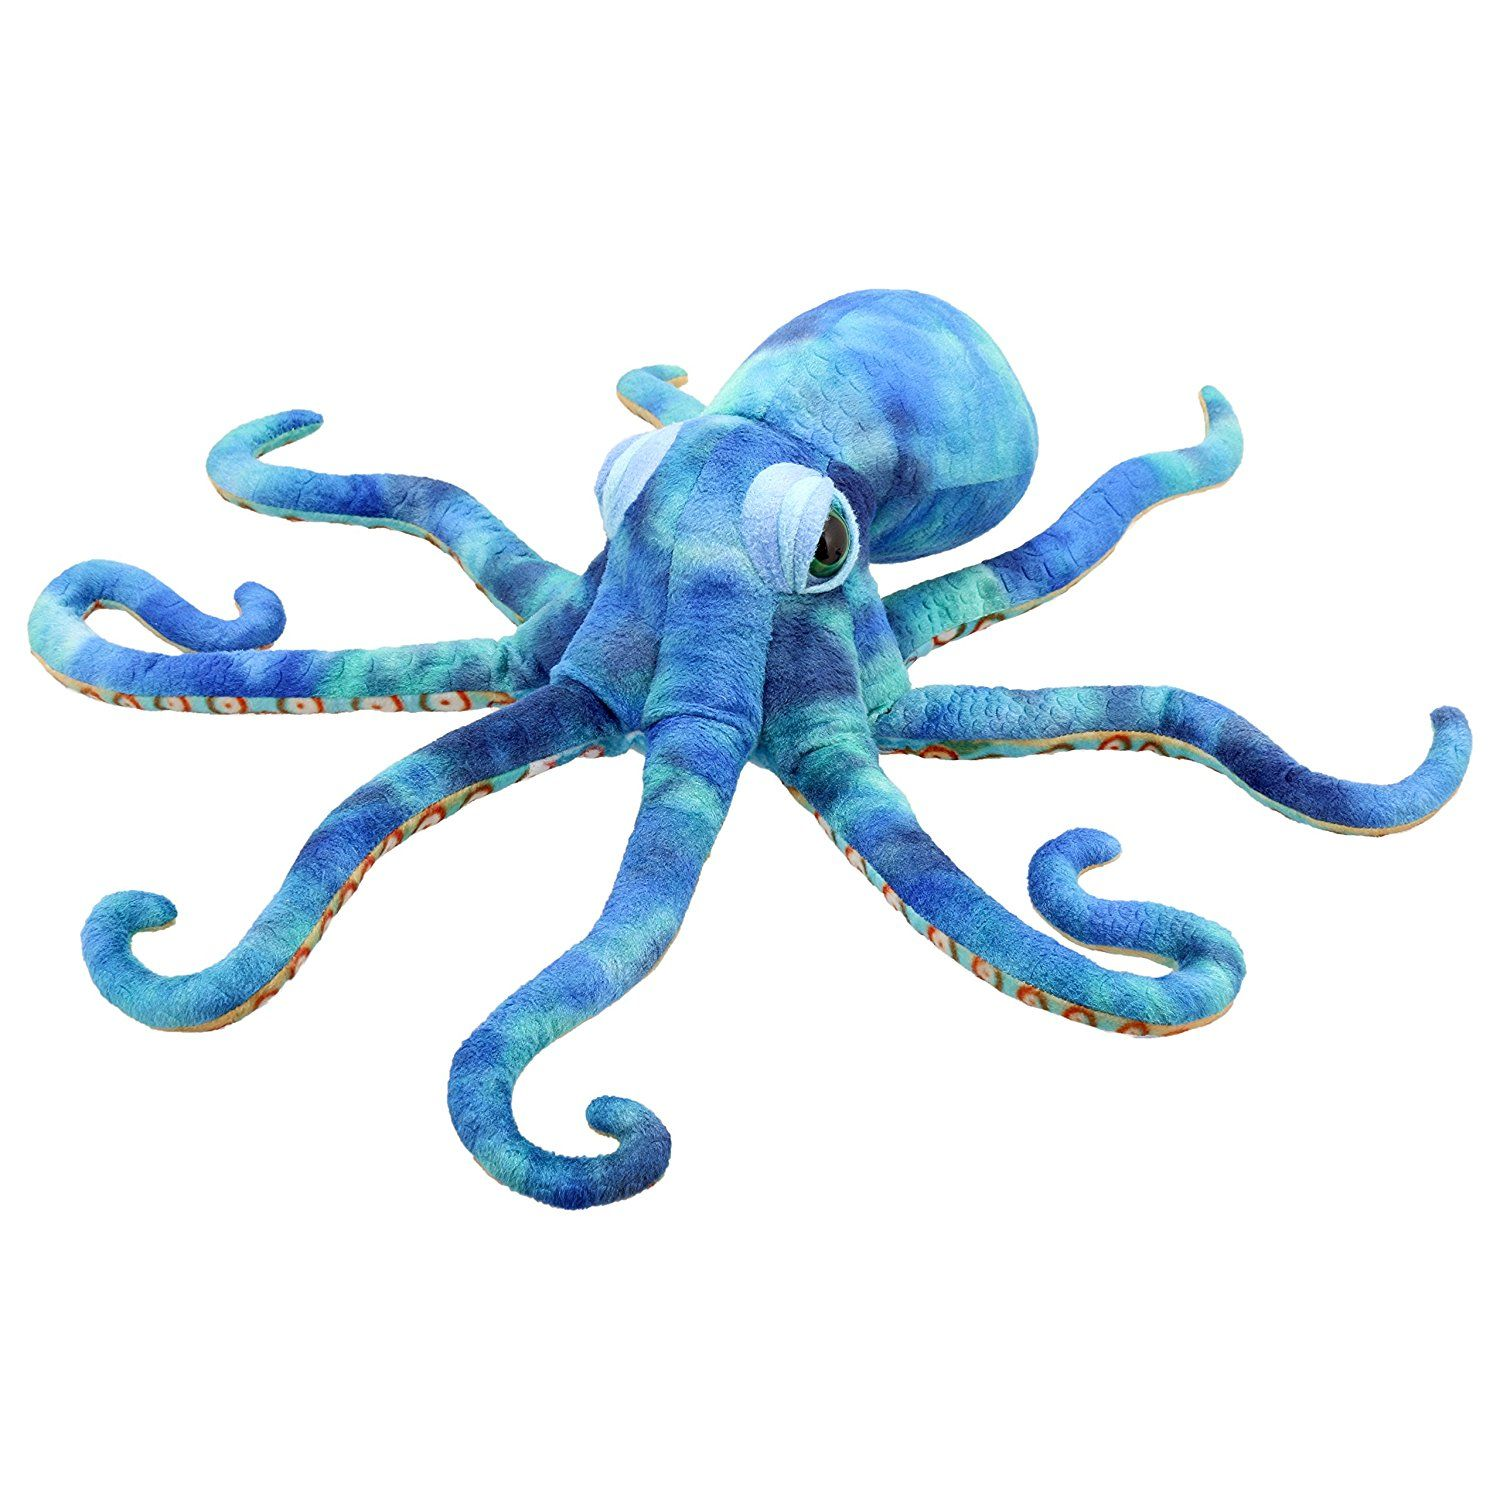 Octopus Puppet 38 inch Stuffed Animal by Puppet Company (009704) by Puppet Company